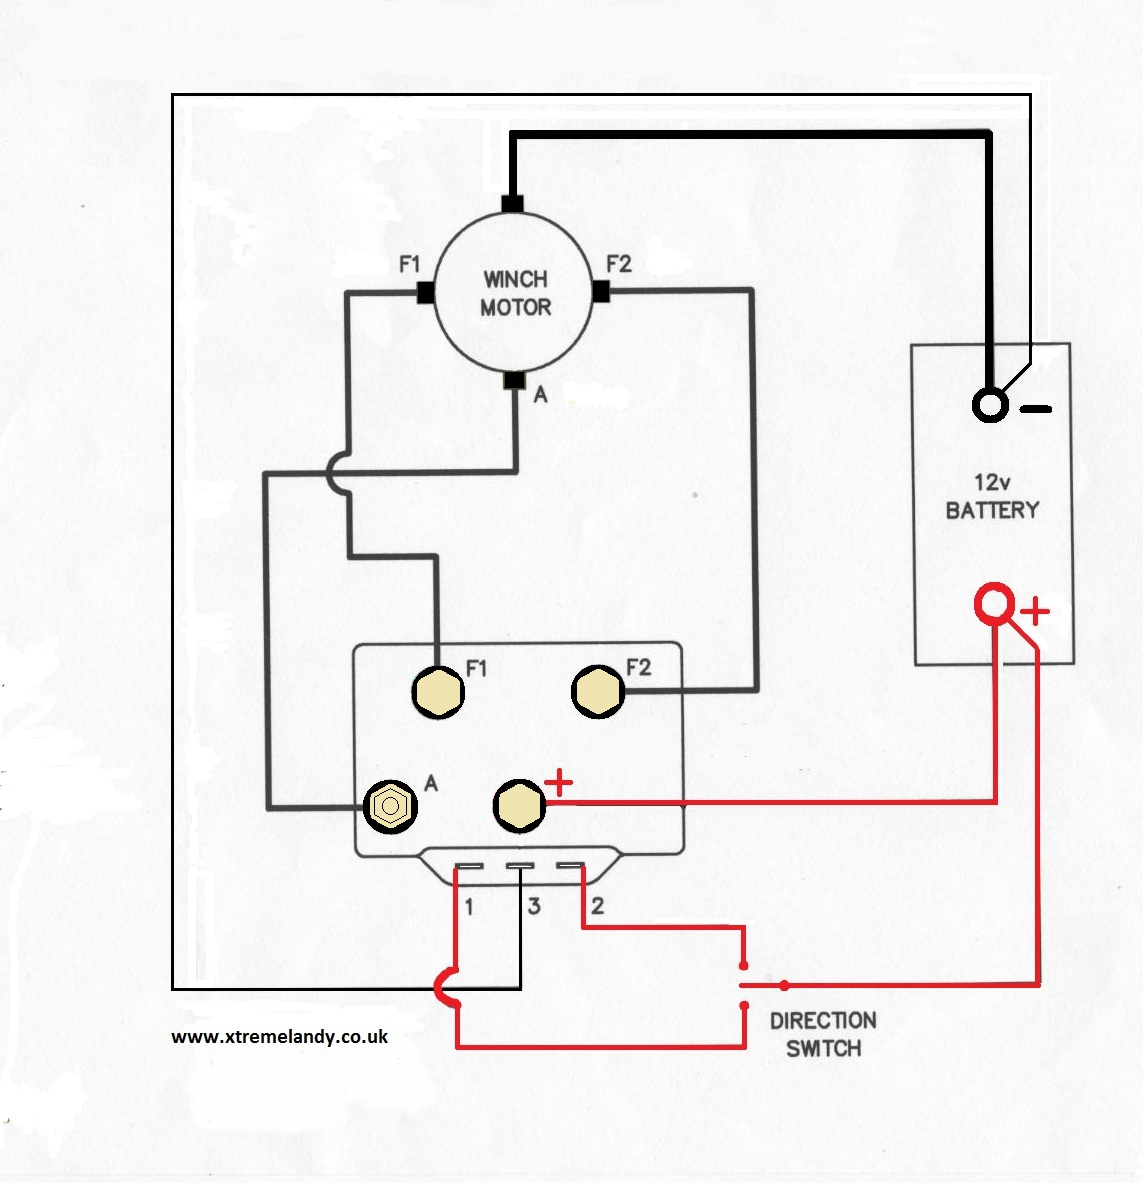 albright wiring diagram image pv4500 wiring diagram winchserviceparts readingrat net winchmax wiring diagram at honlapkeszites.co